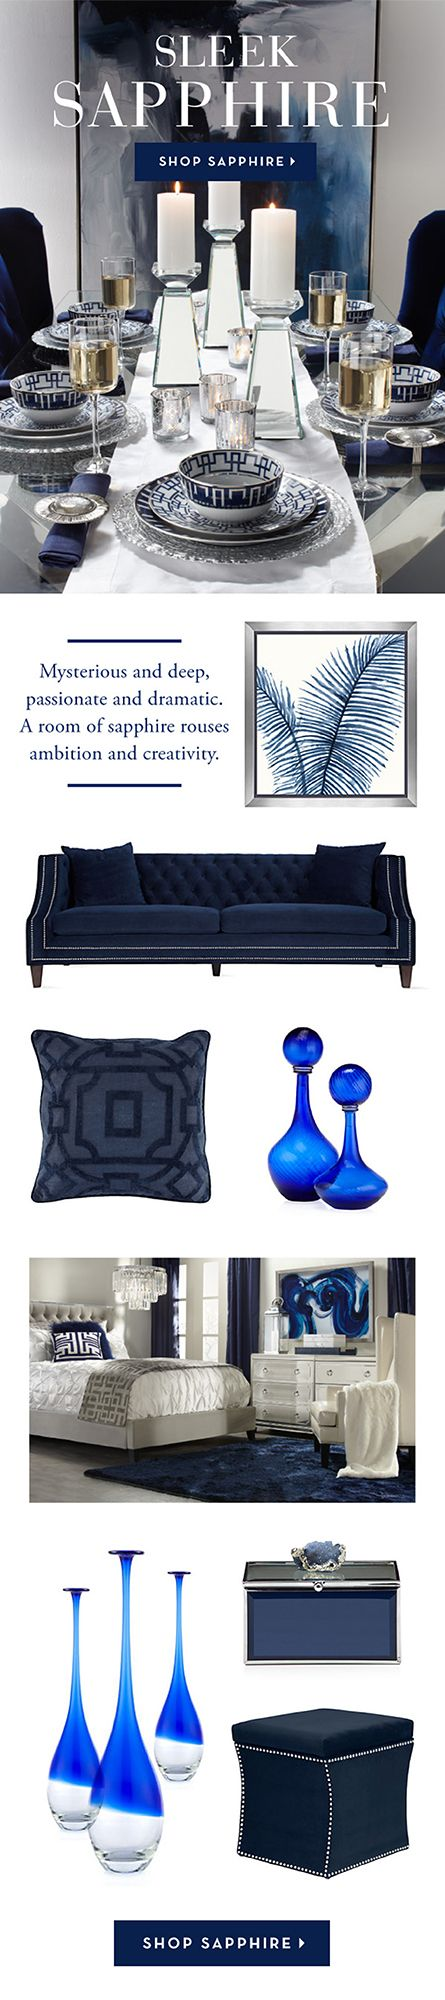 Holiday decor calls for jewel-toned hues in deep rich fabrics. Shop our Sapphire furniture & decor on zgallerie.com